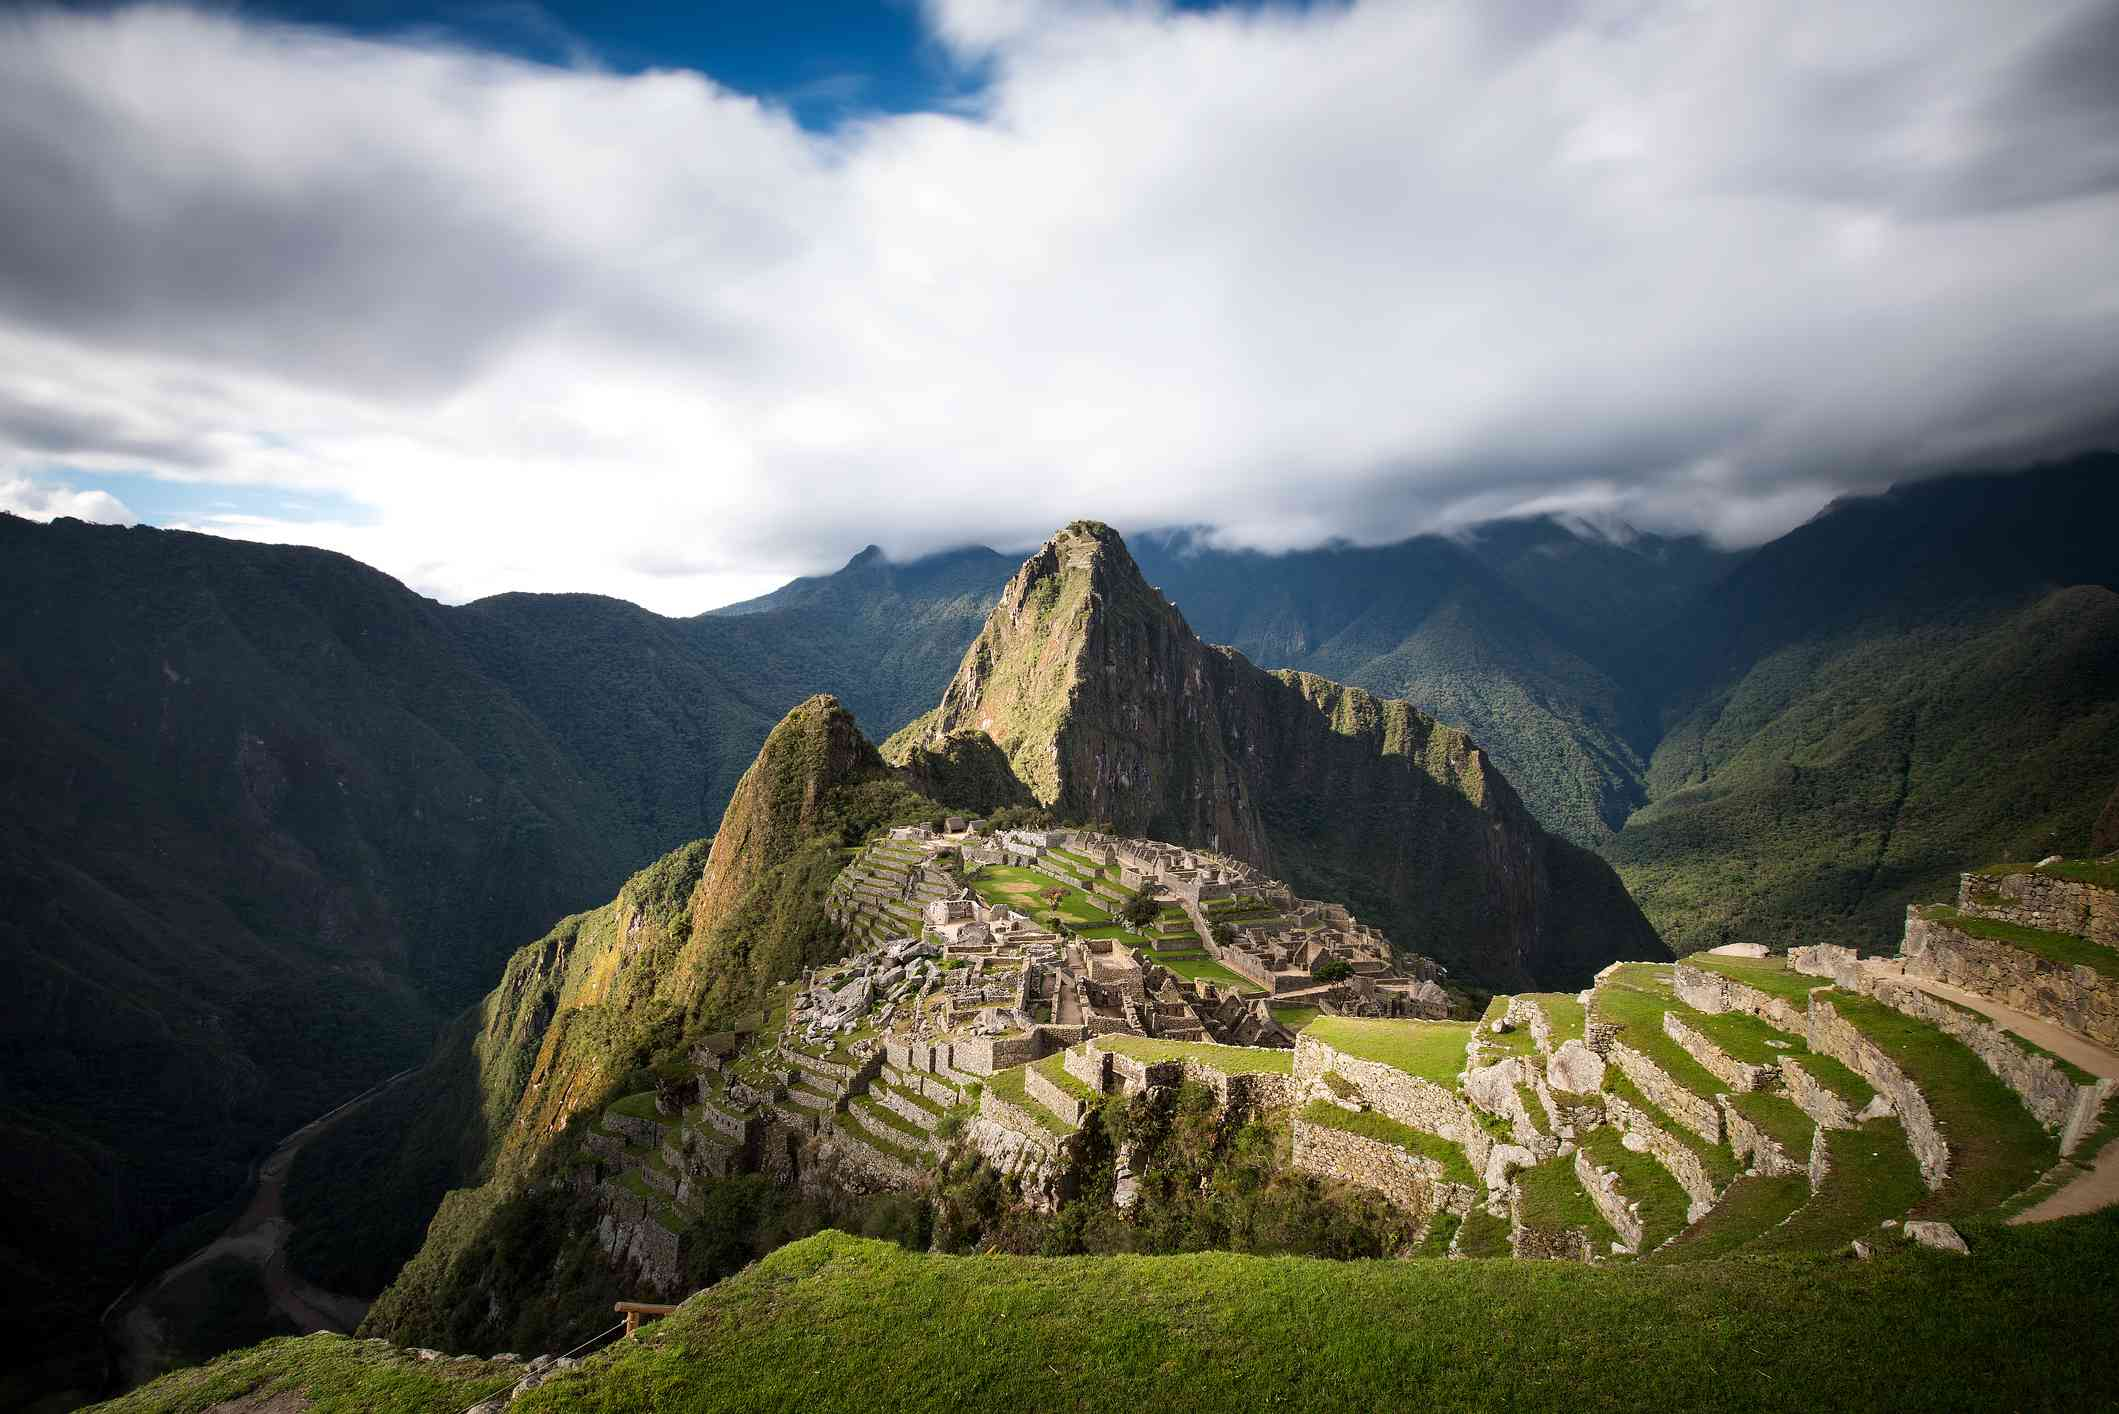 View of the mountains and ruins of Machu Picchu covered in lush green plants under thick clouds with a bit of blue sky